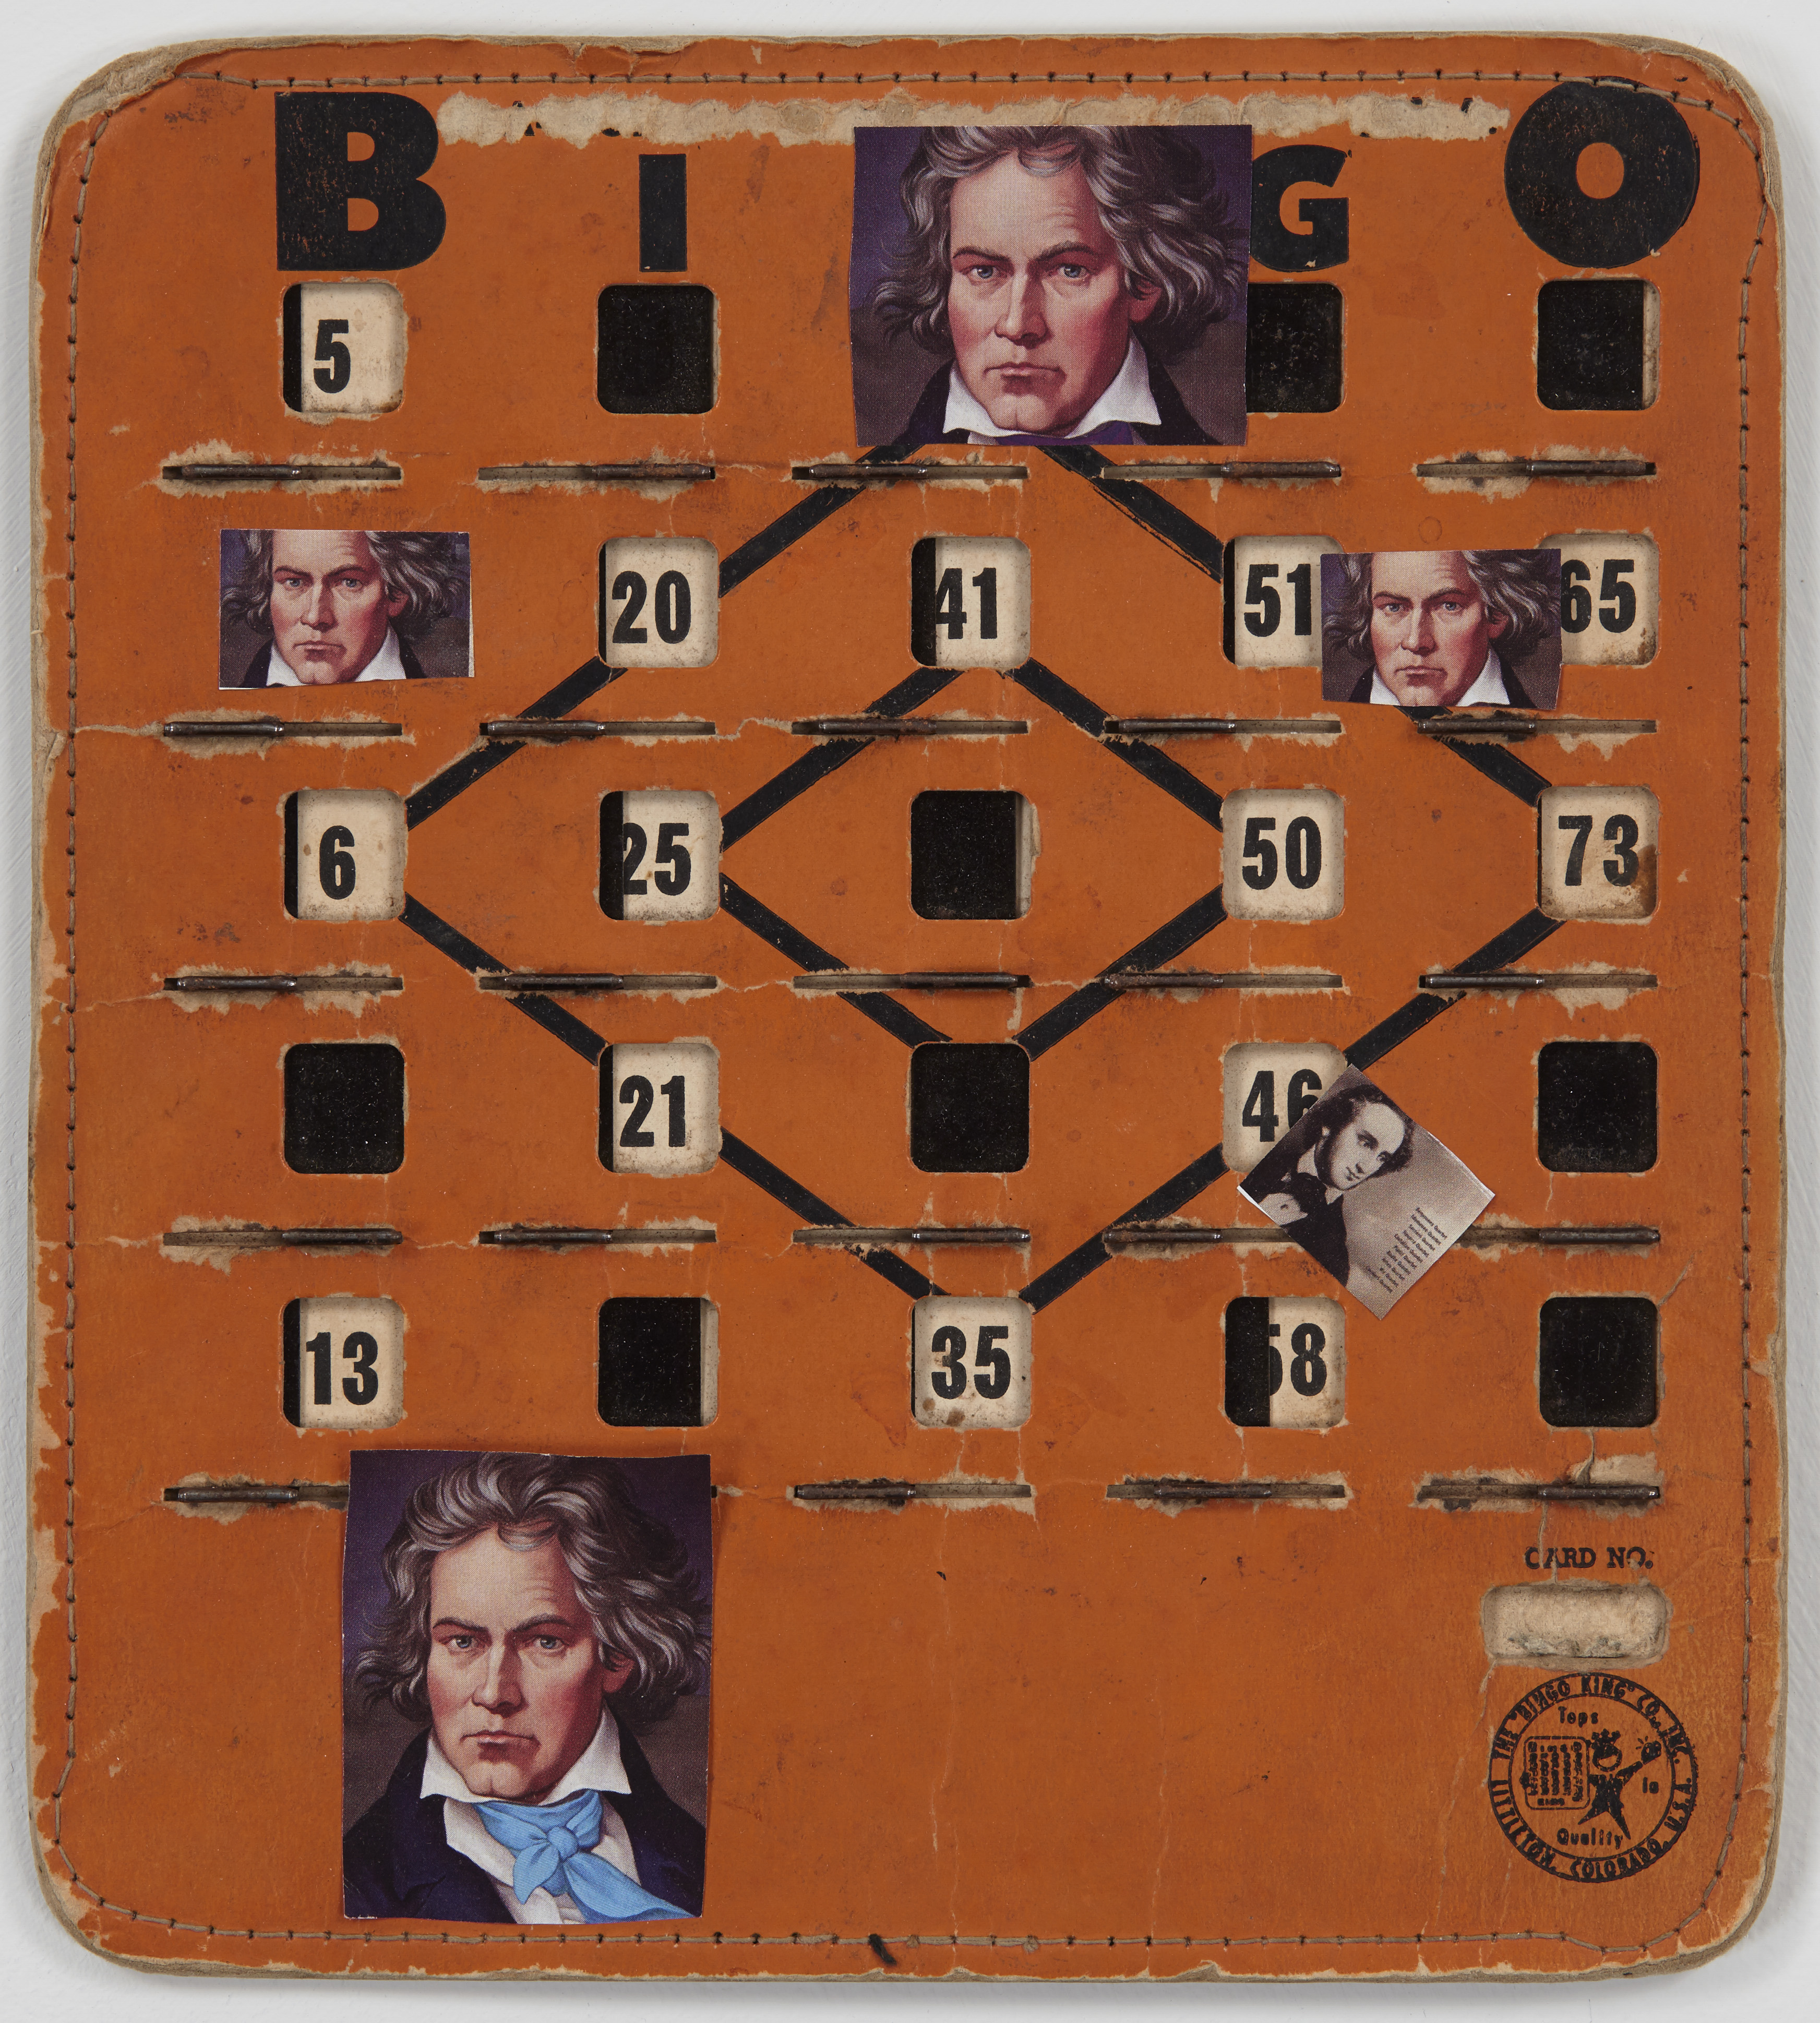 Ashbery_Bingo Beethoven_2014_collage on vintage Bingo board_8.25x7.5in_300dpi